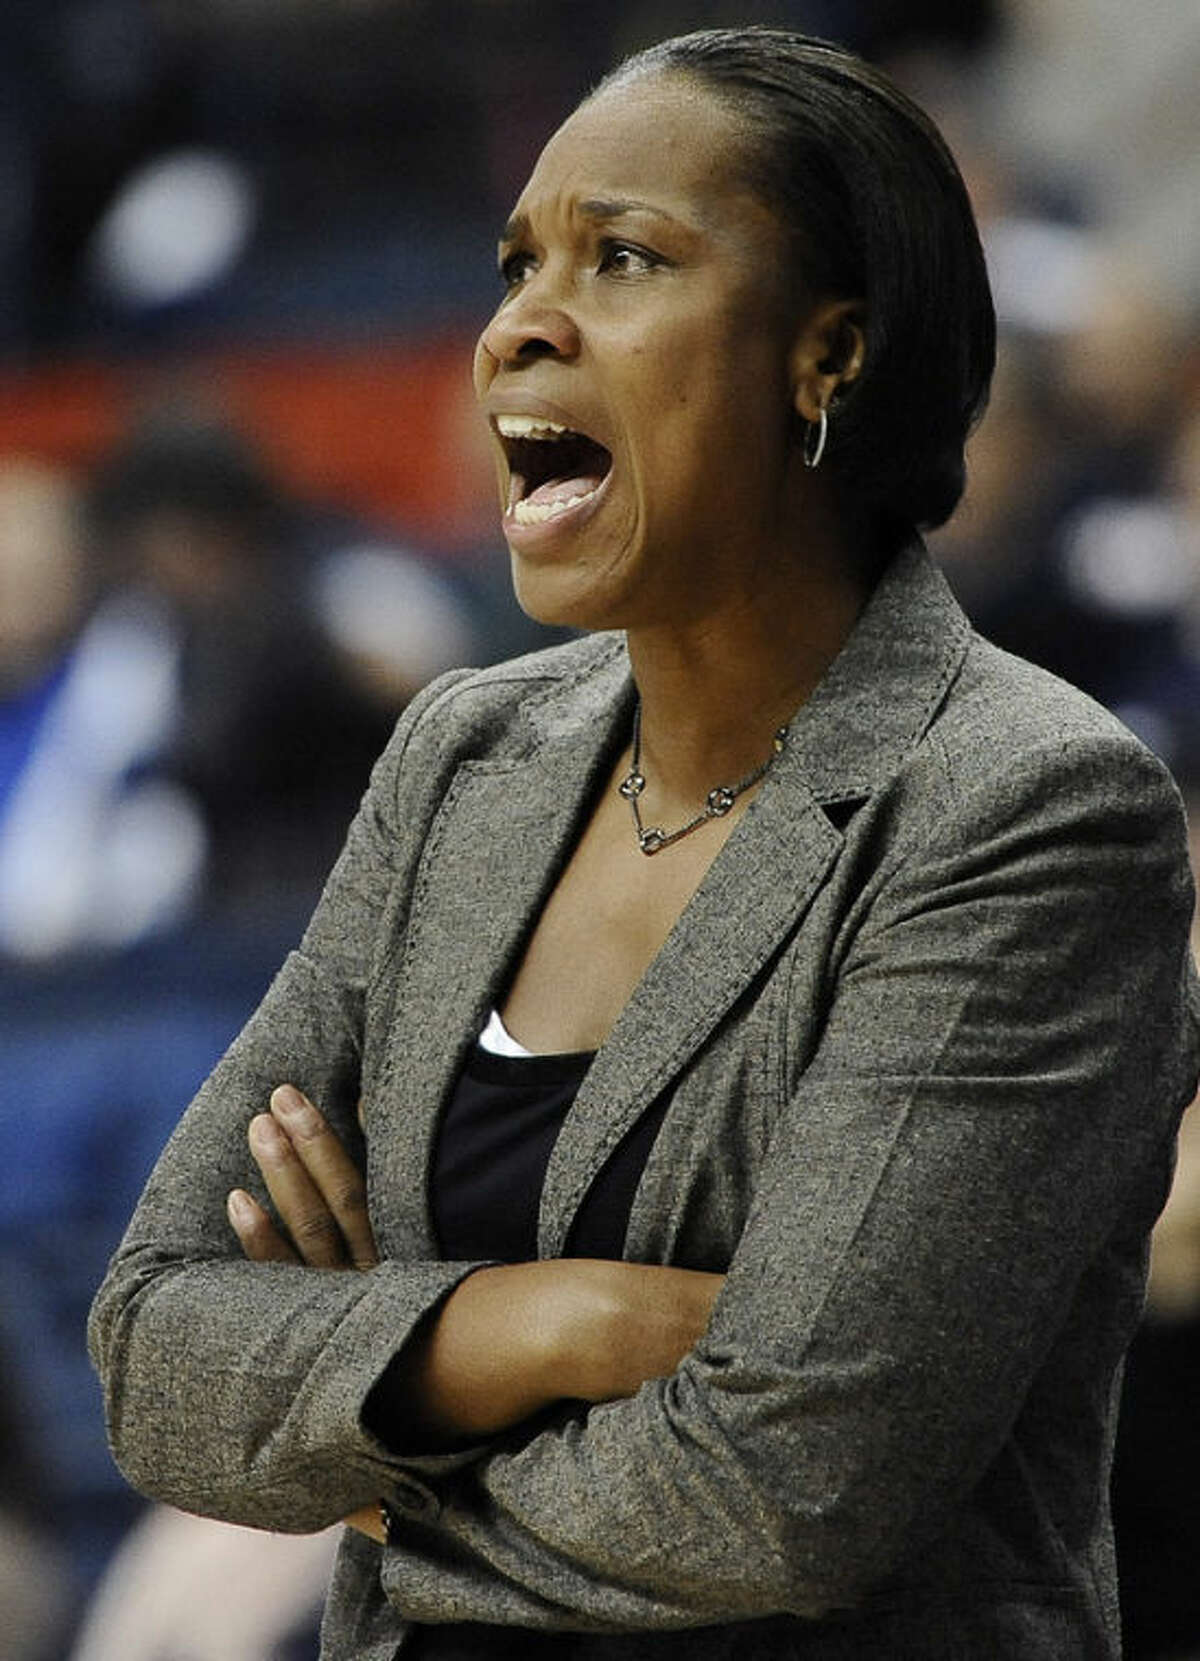 Cincinnati head coach Jamelle Elliot calls out to her team during the first half of an NCAA college basketball game against Connecticut, Sunday, Dec. 29, 2013, in Storrs, Conn. (AP Photo/Jessica Hill)